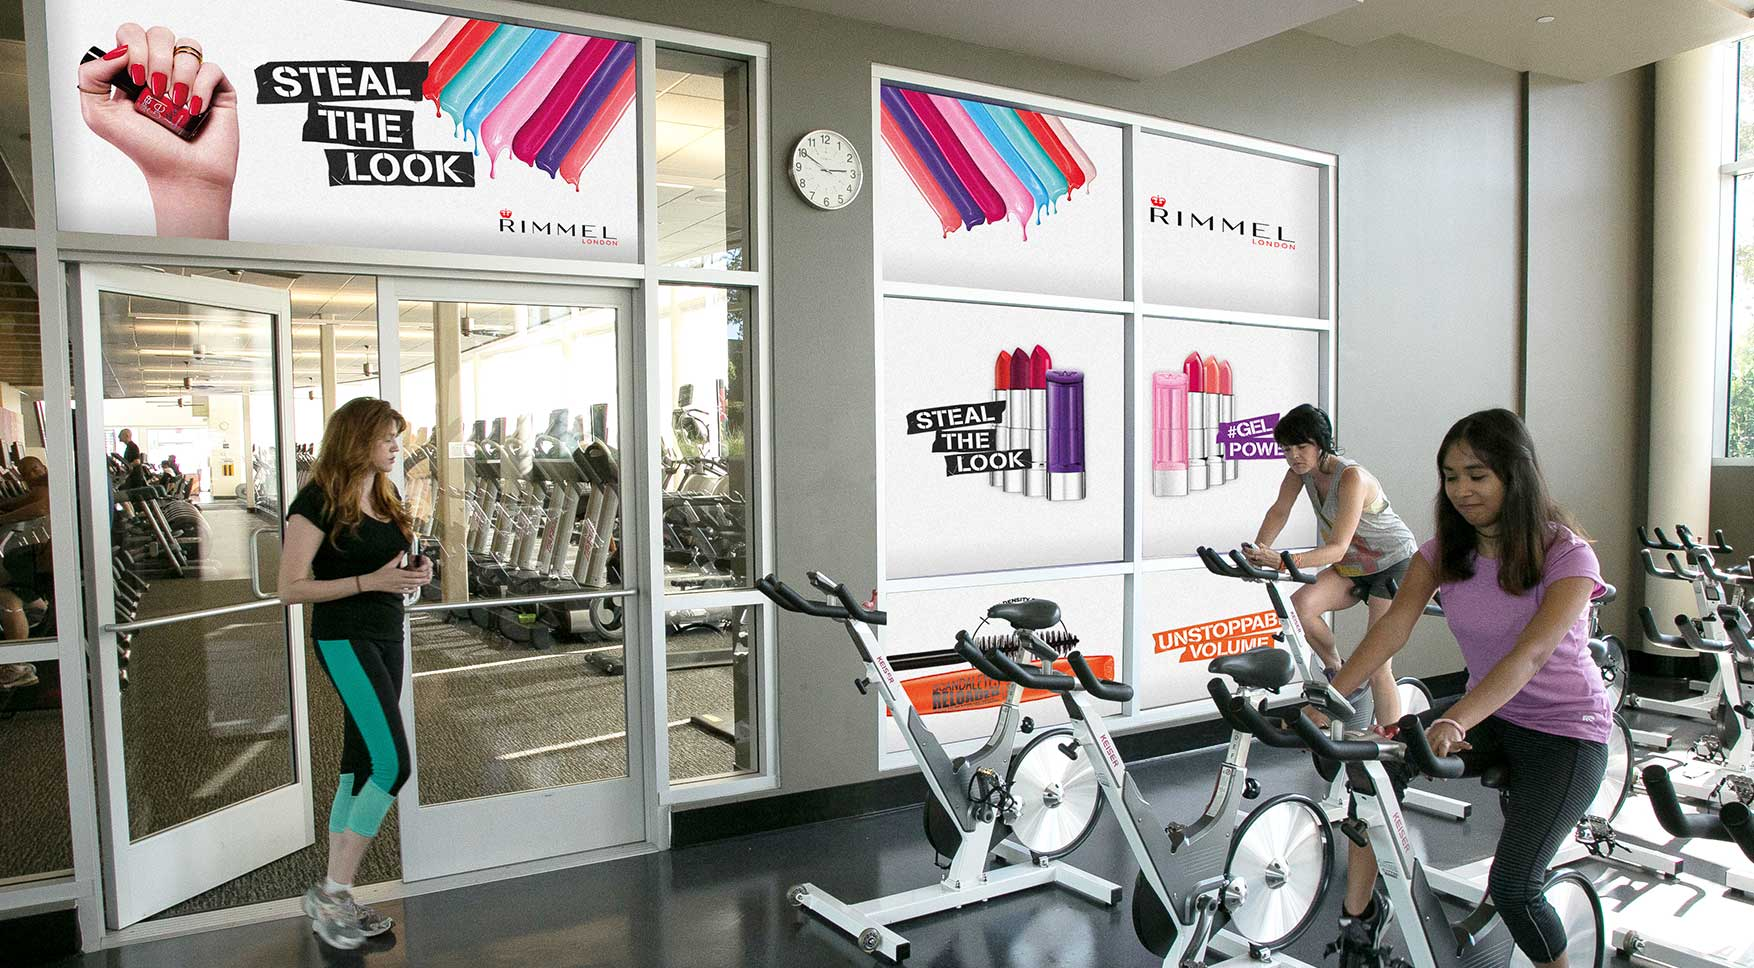 Women in exercise clothes in spin class near Gym Advertising